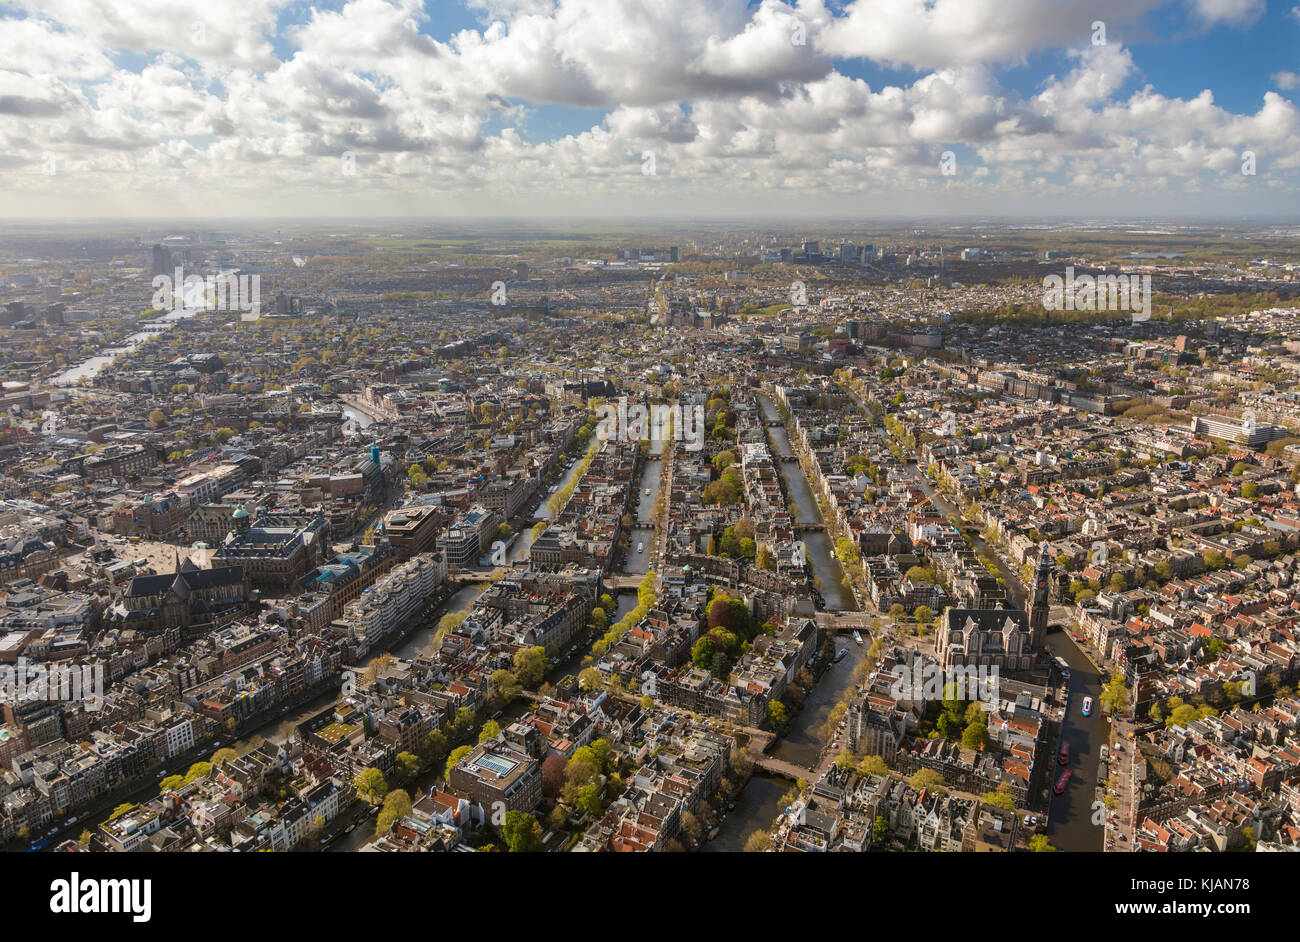 Aerial view of the Old City Centre Amsterdam, Netherlands - Stock Image